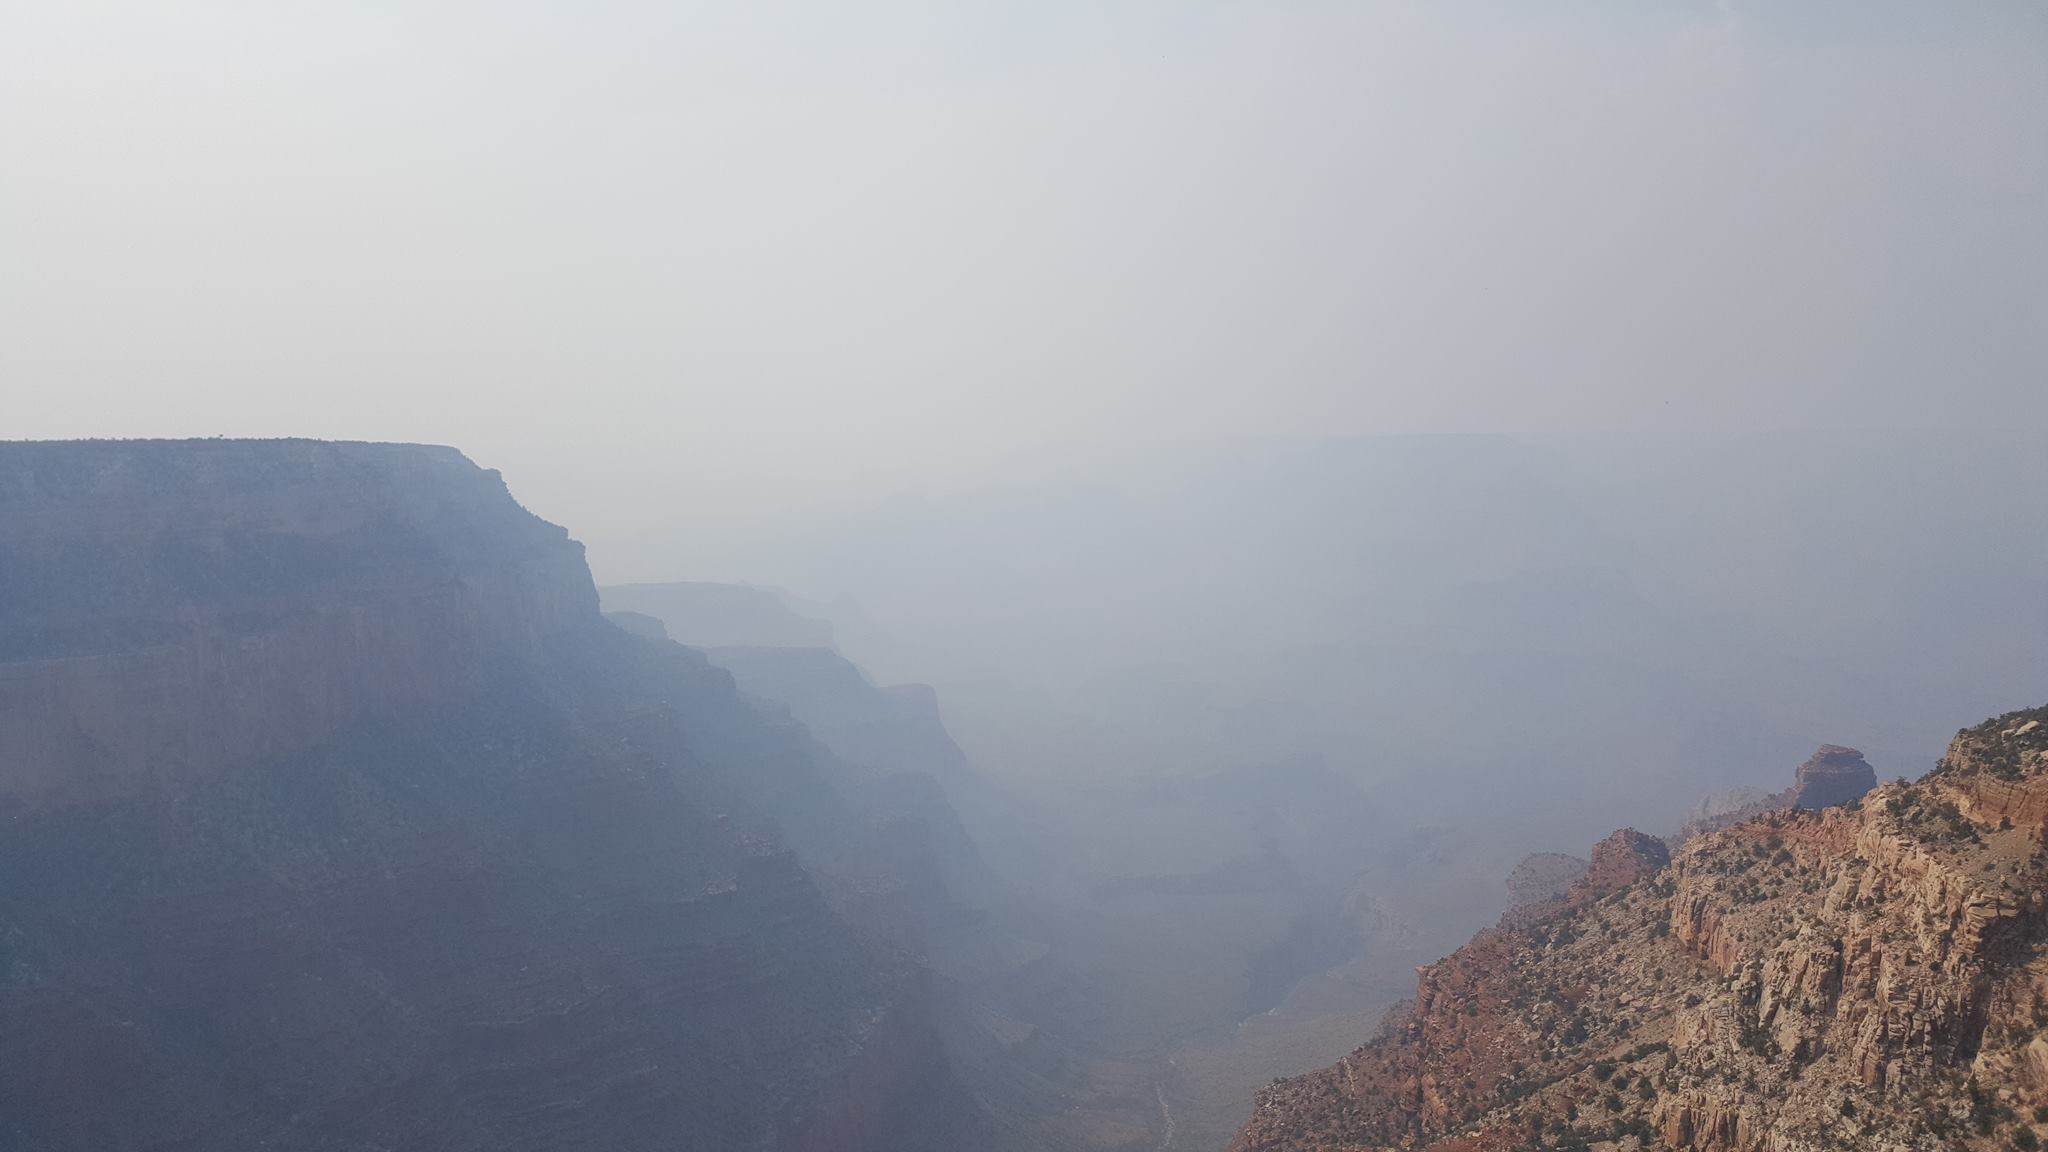 View from the rim of a canyon, past nearby cliffs into a smoke-filled interior